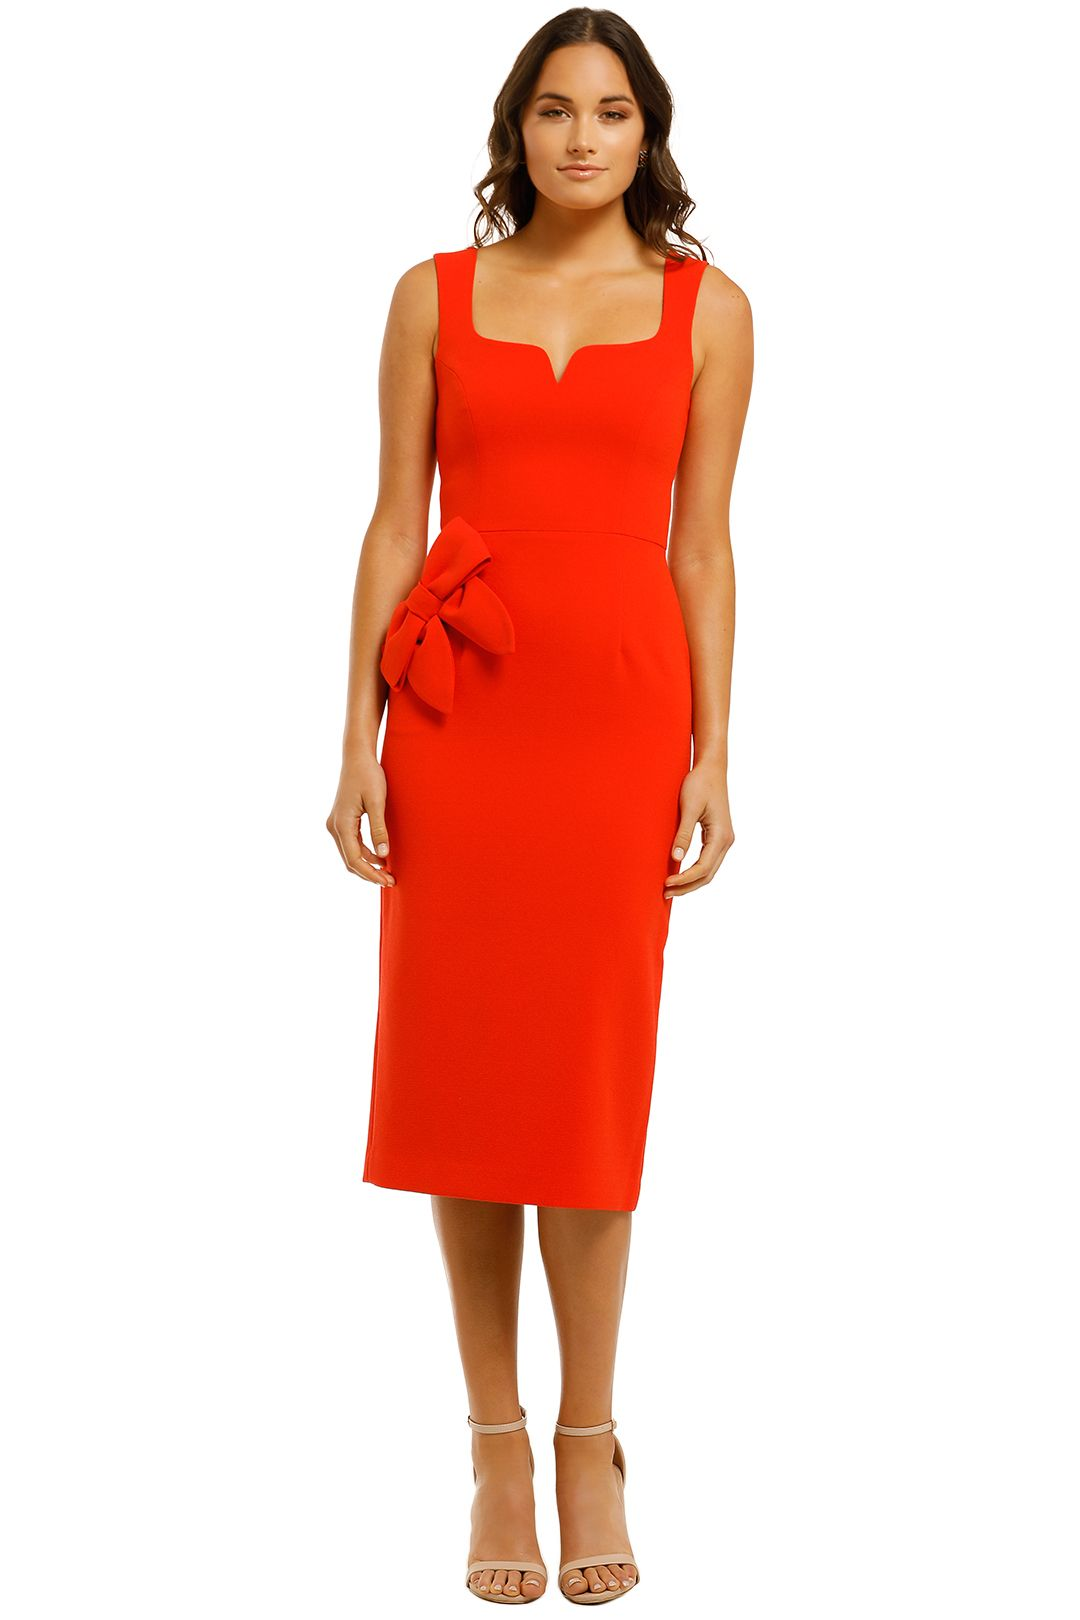 Rebecca-Vallance-Galerie-Bow-Midi-Dress-Red-Front